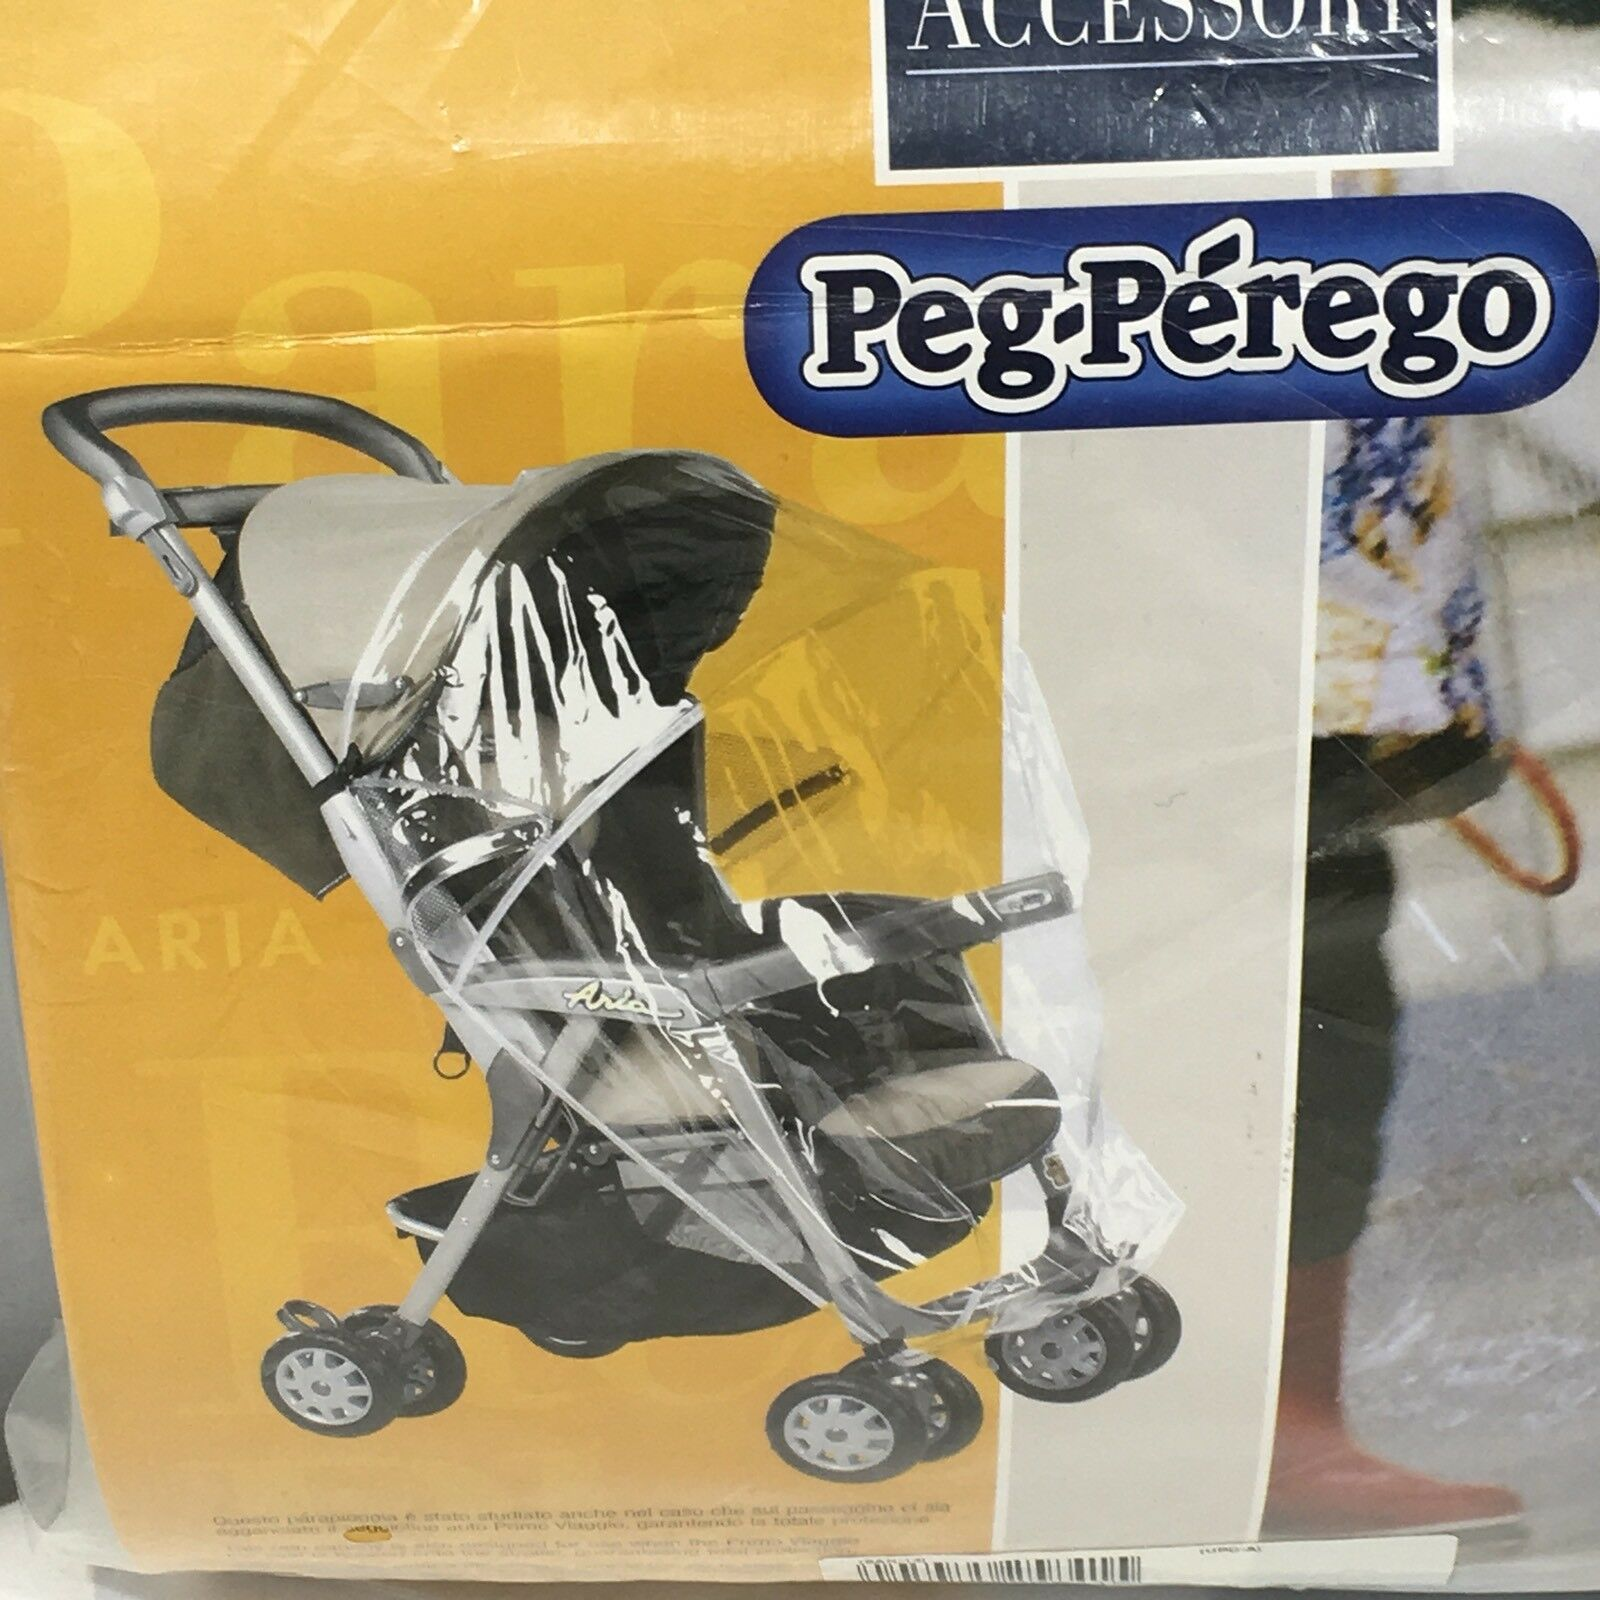 Komfort Buggy Book Von Peg Perego Peg Perego Stroller Rain Cover Accessory For Aria Transparent Keep Baby Dry